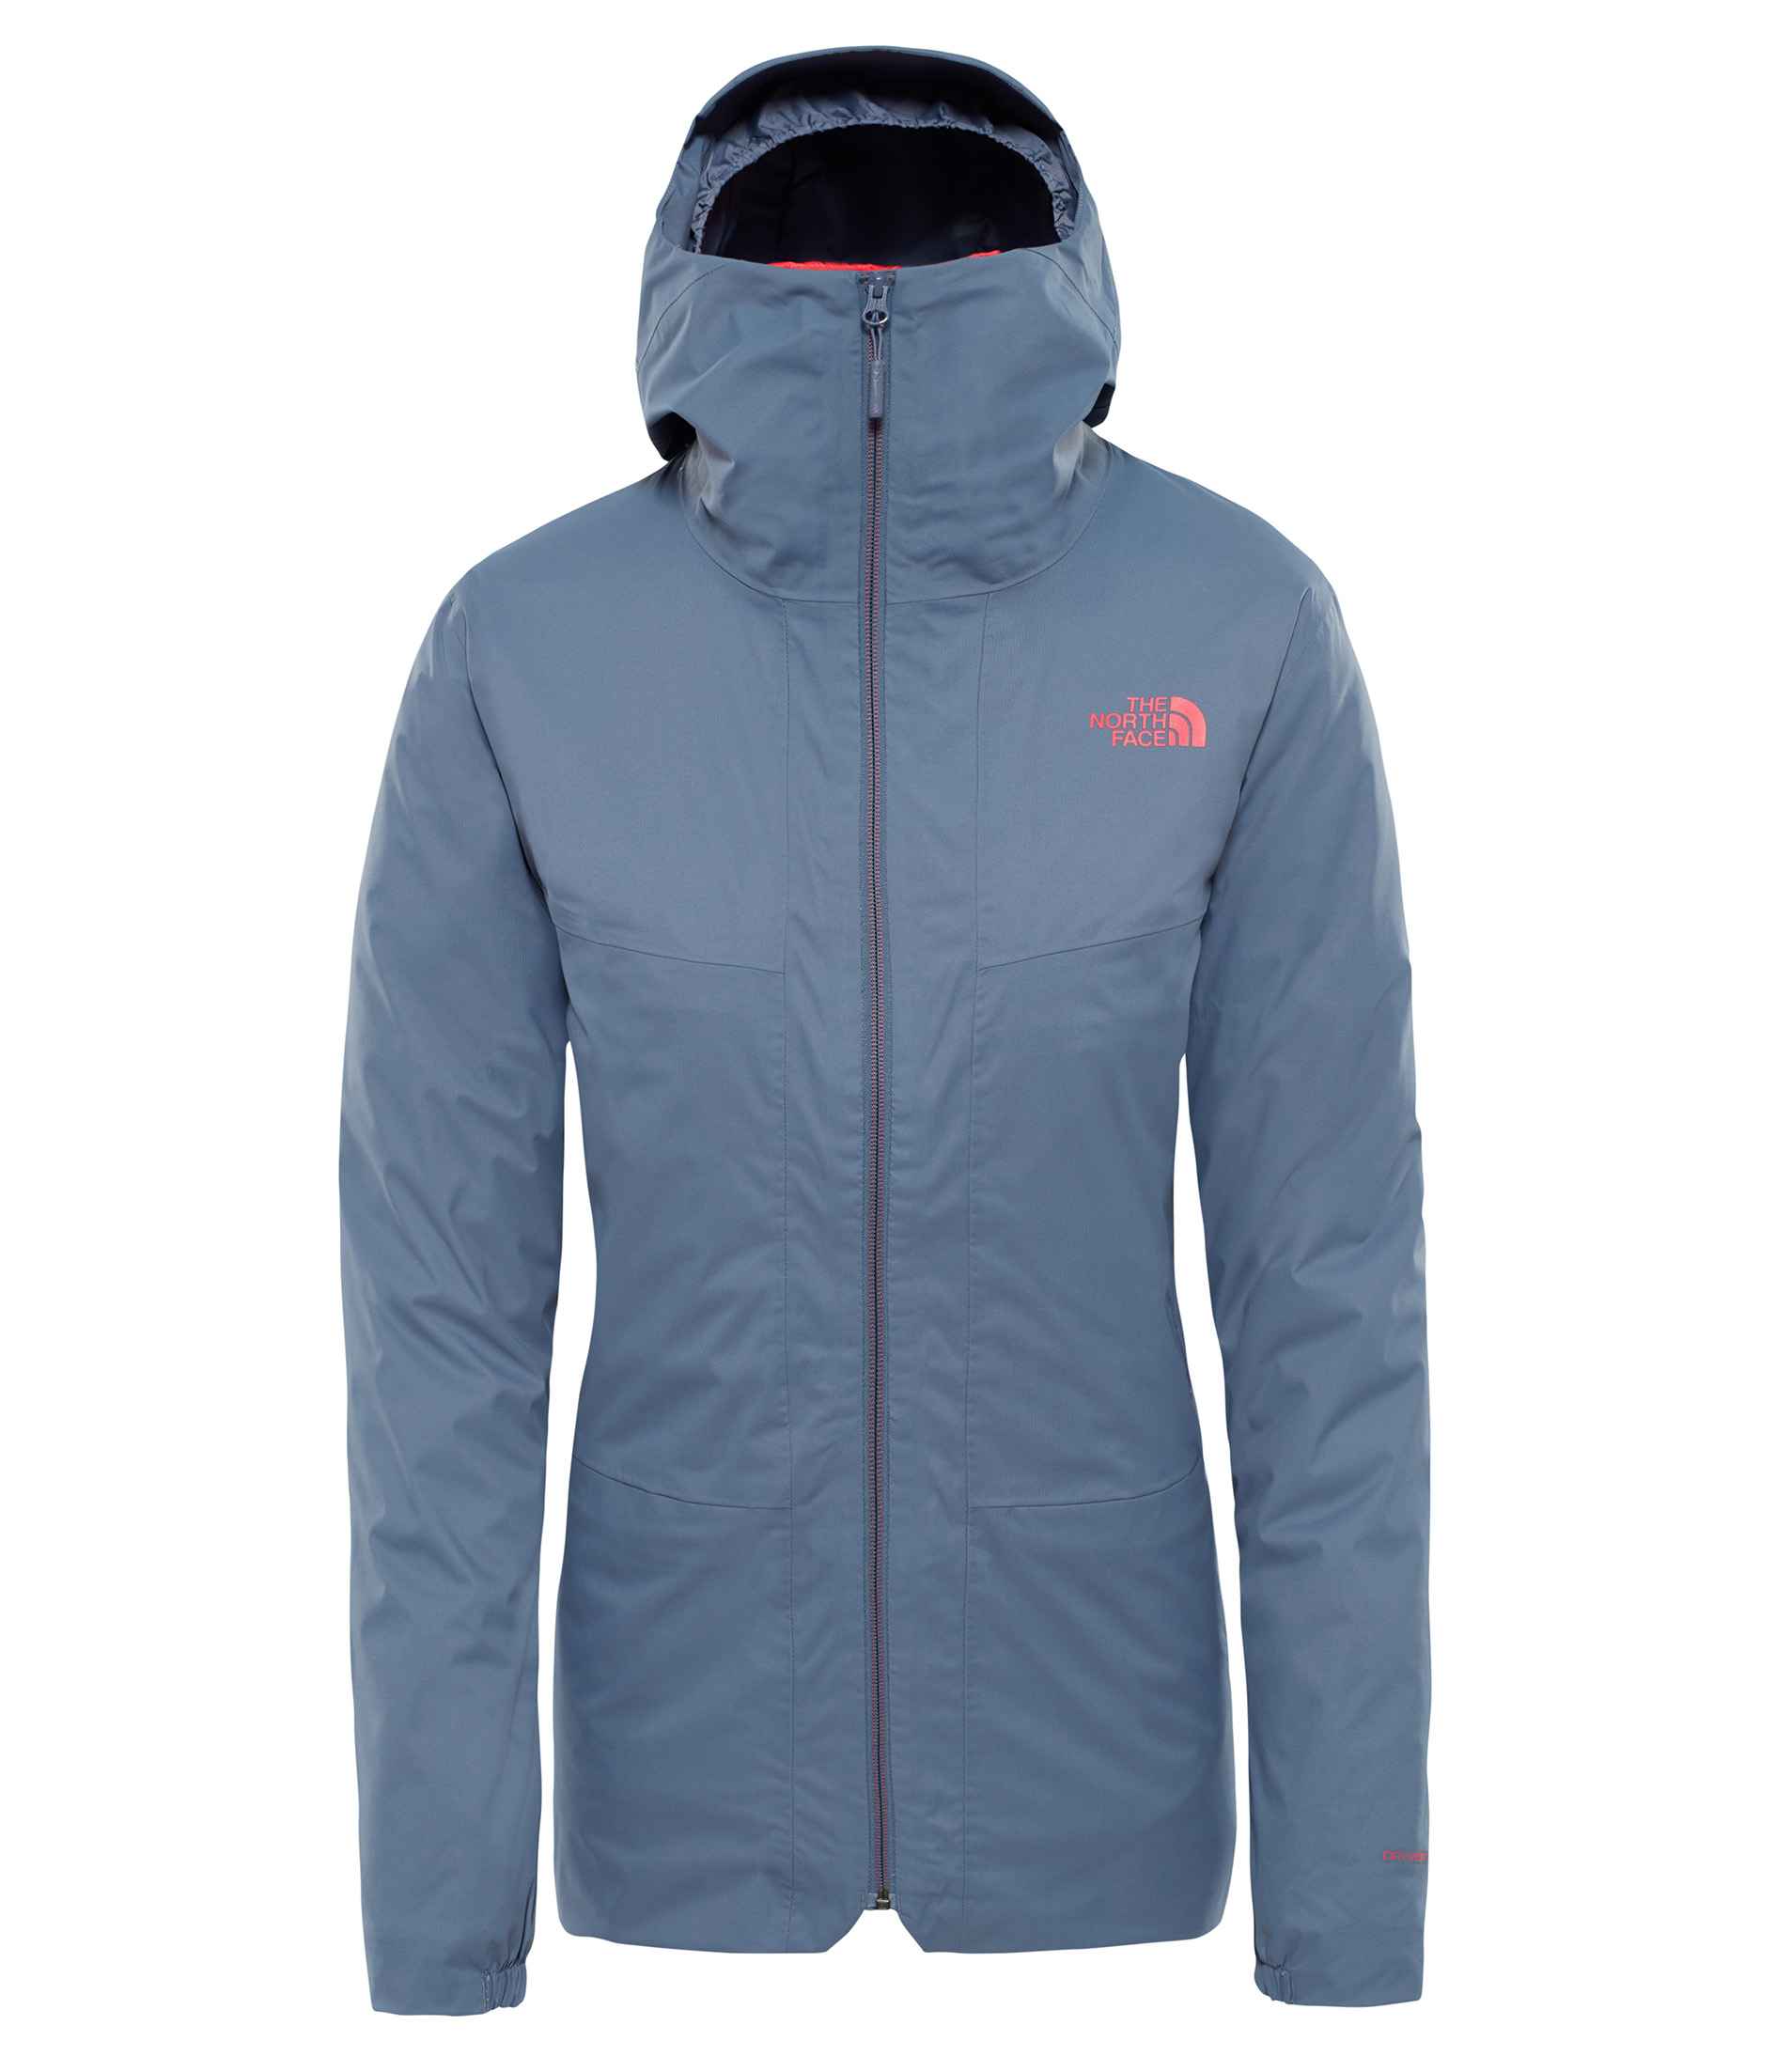 THE NORTH FACE W HIKESTELLER TRICLIMATE® - SG, GRISAILLE GREY/ velikost: M